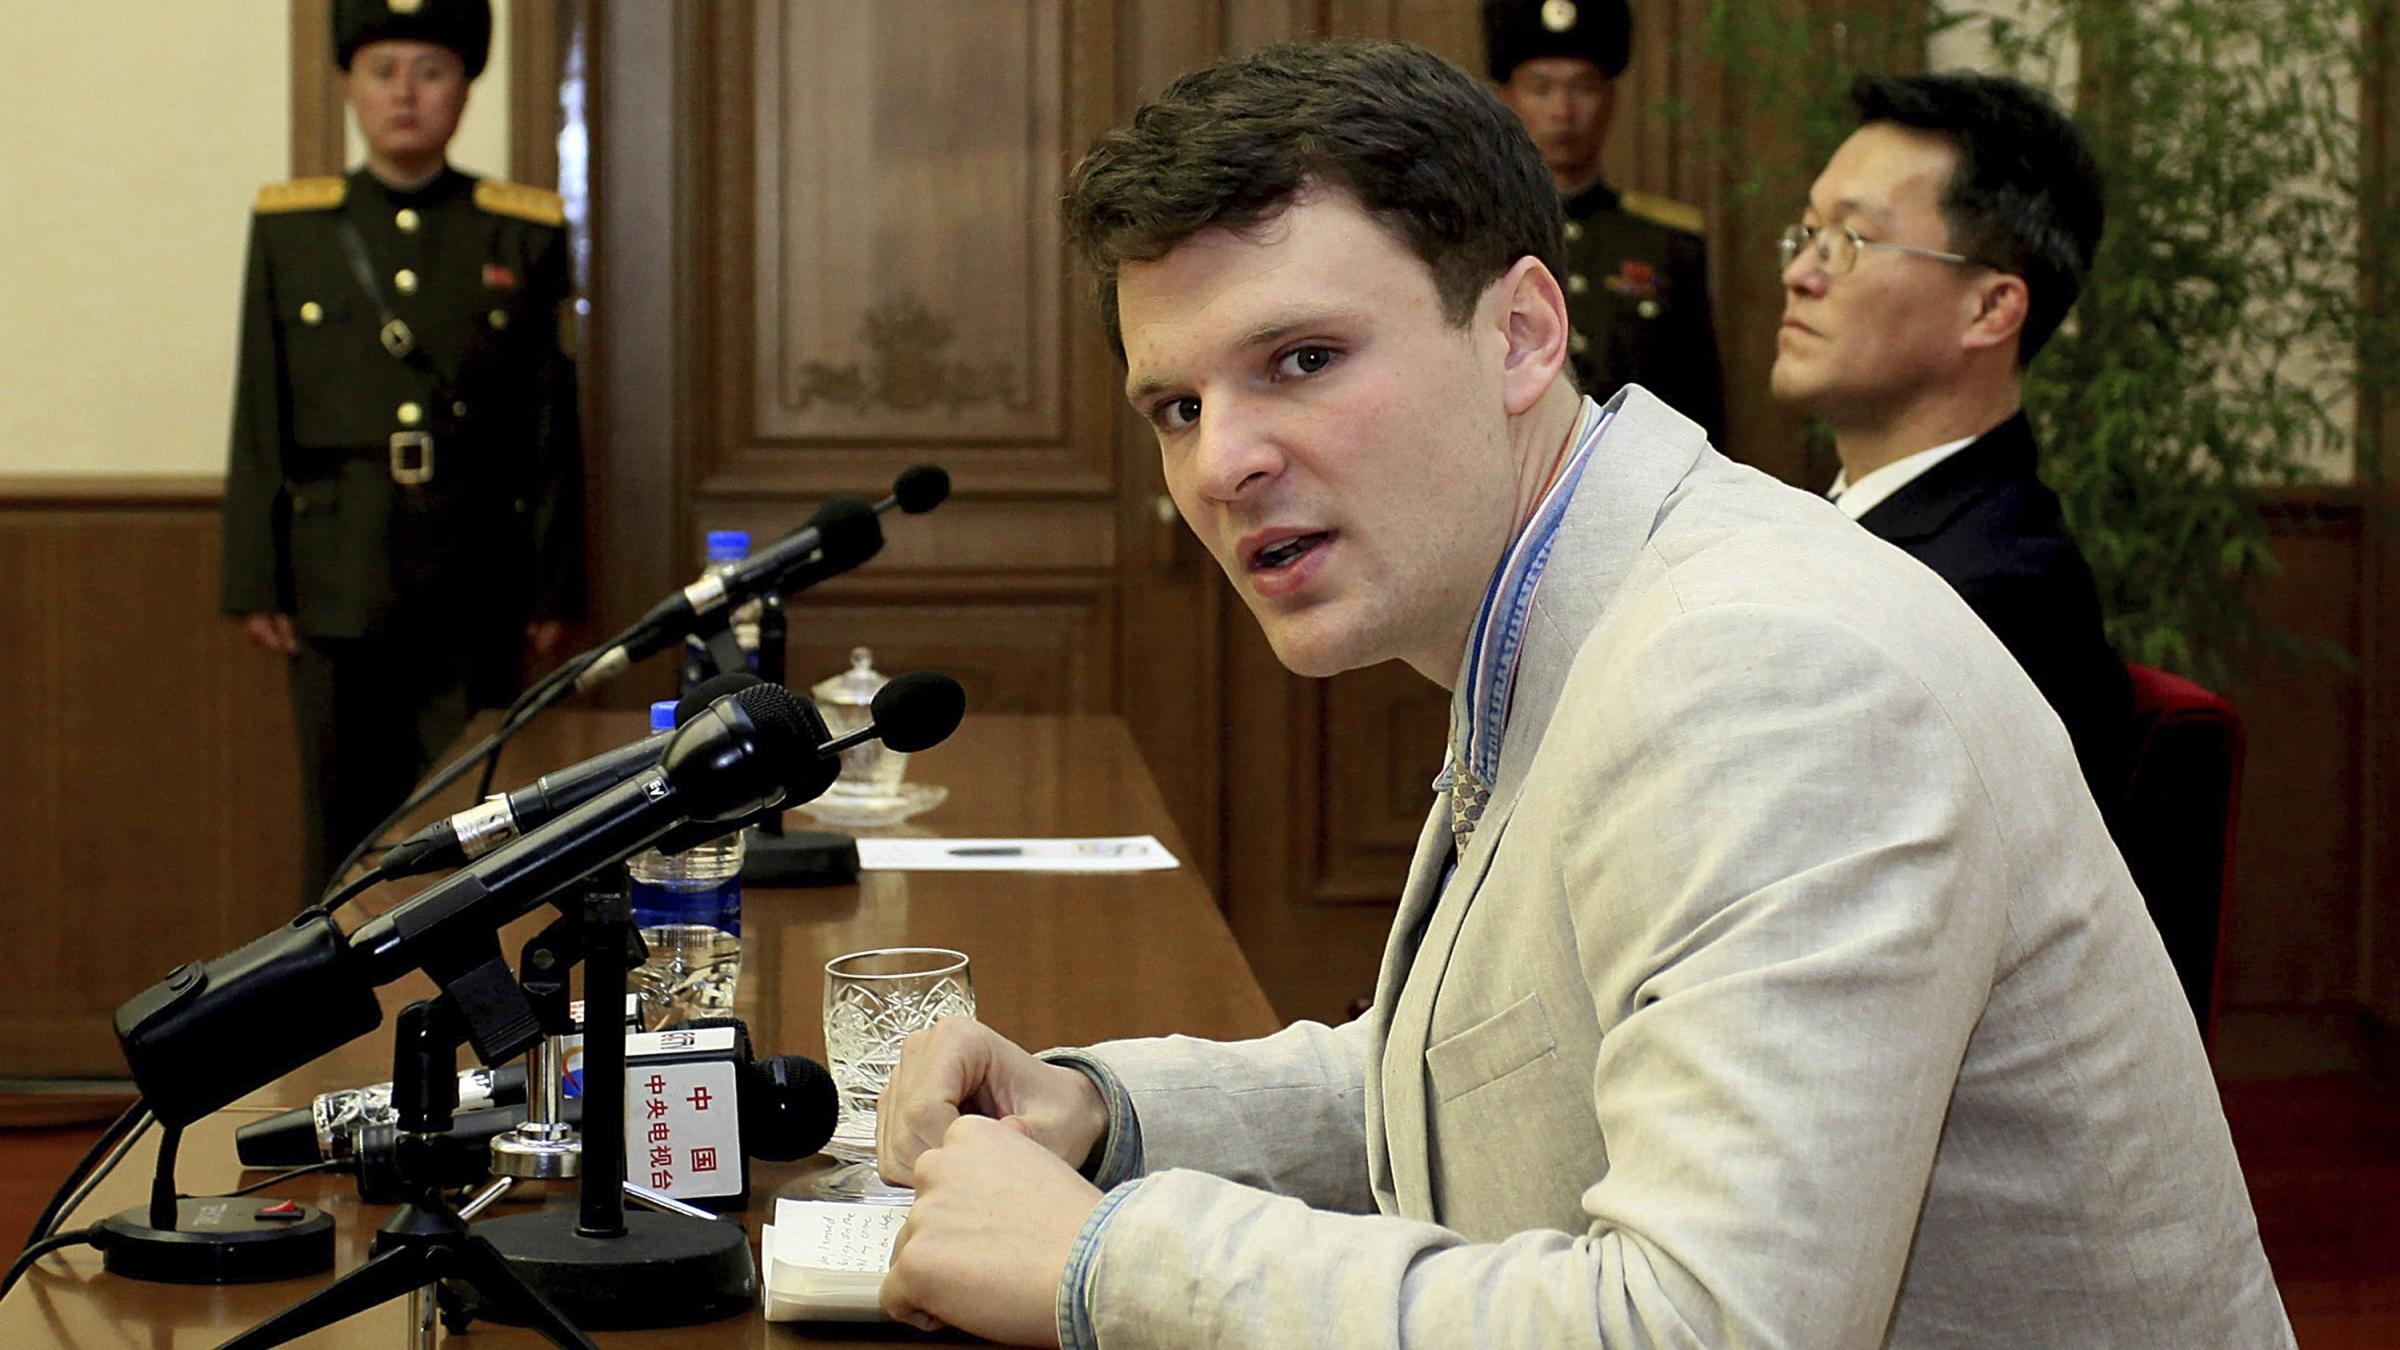 Tillerson: North Korea releases U.S. citizen Otto Warmbier